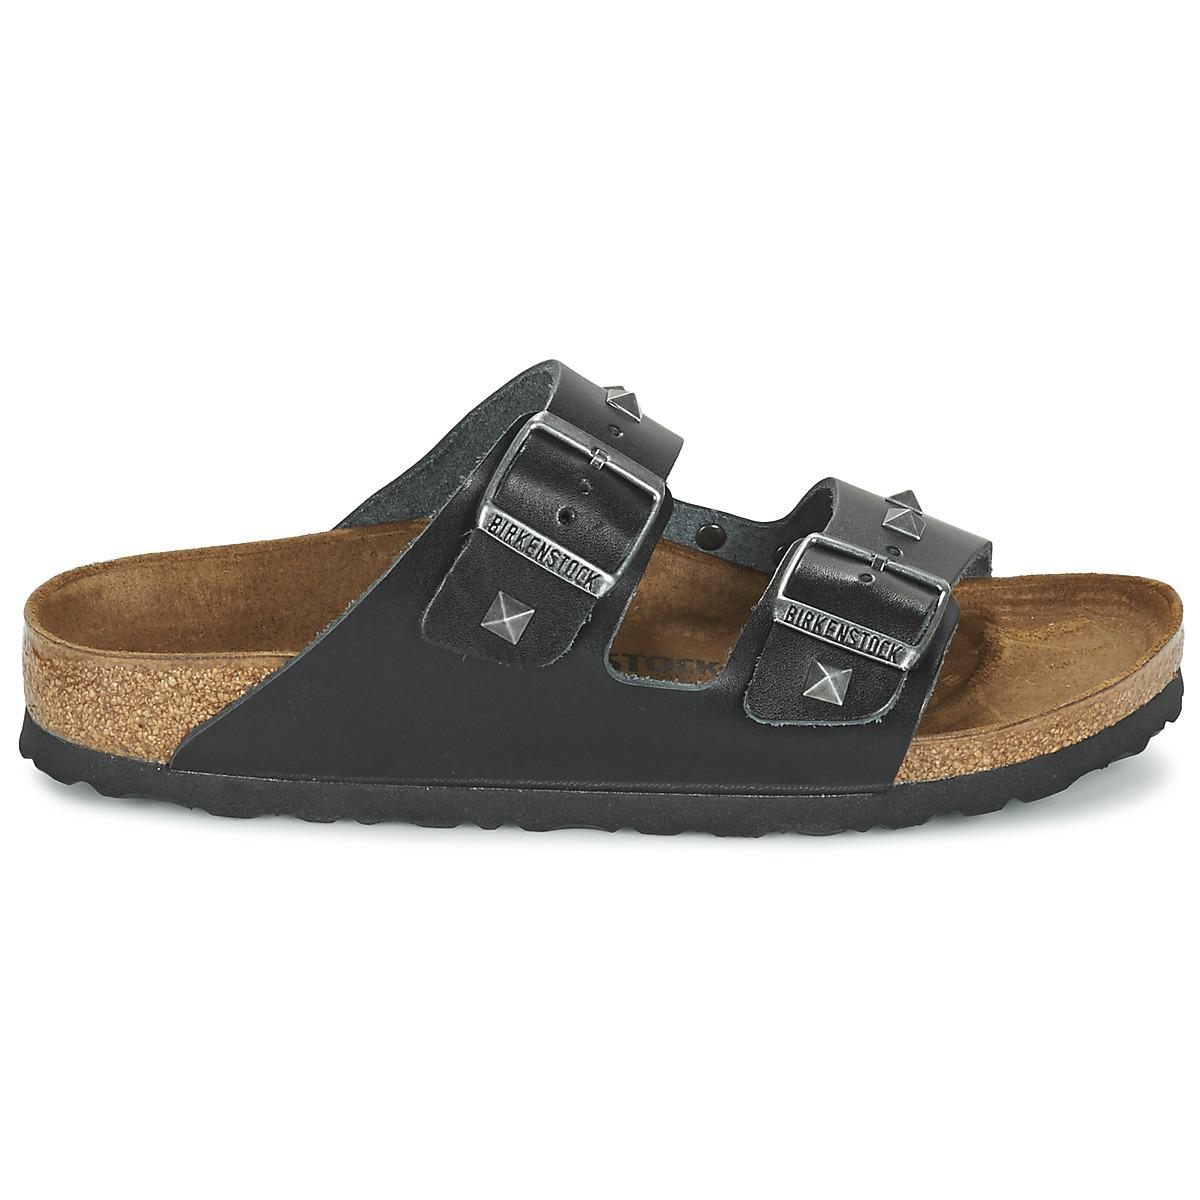 Birkenstock Arizona Nieten Mules   Casual Shoes in Black - Lyst 3eceb8d3312